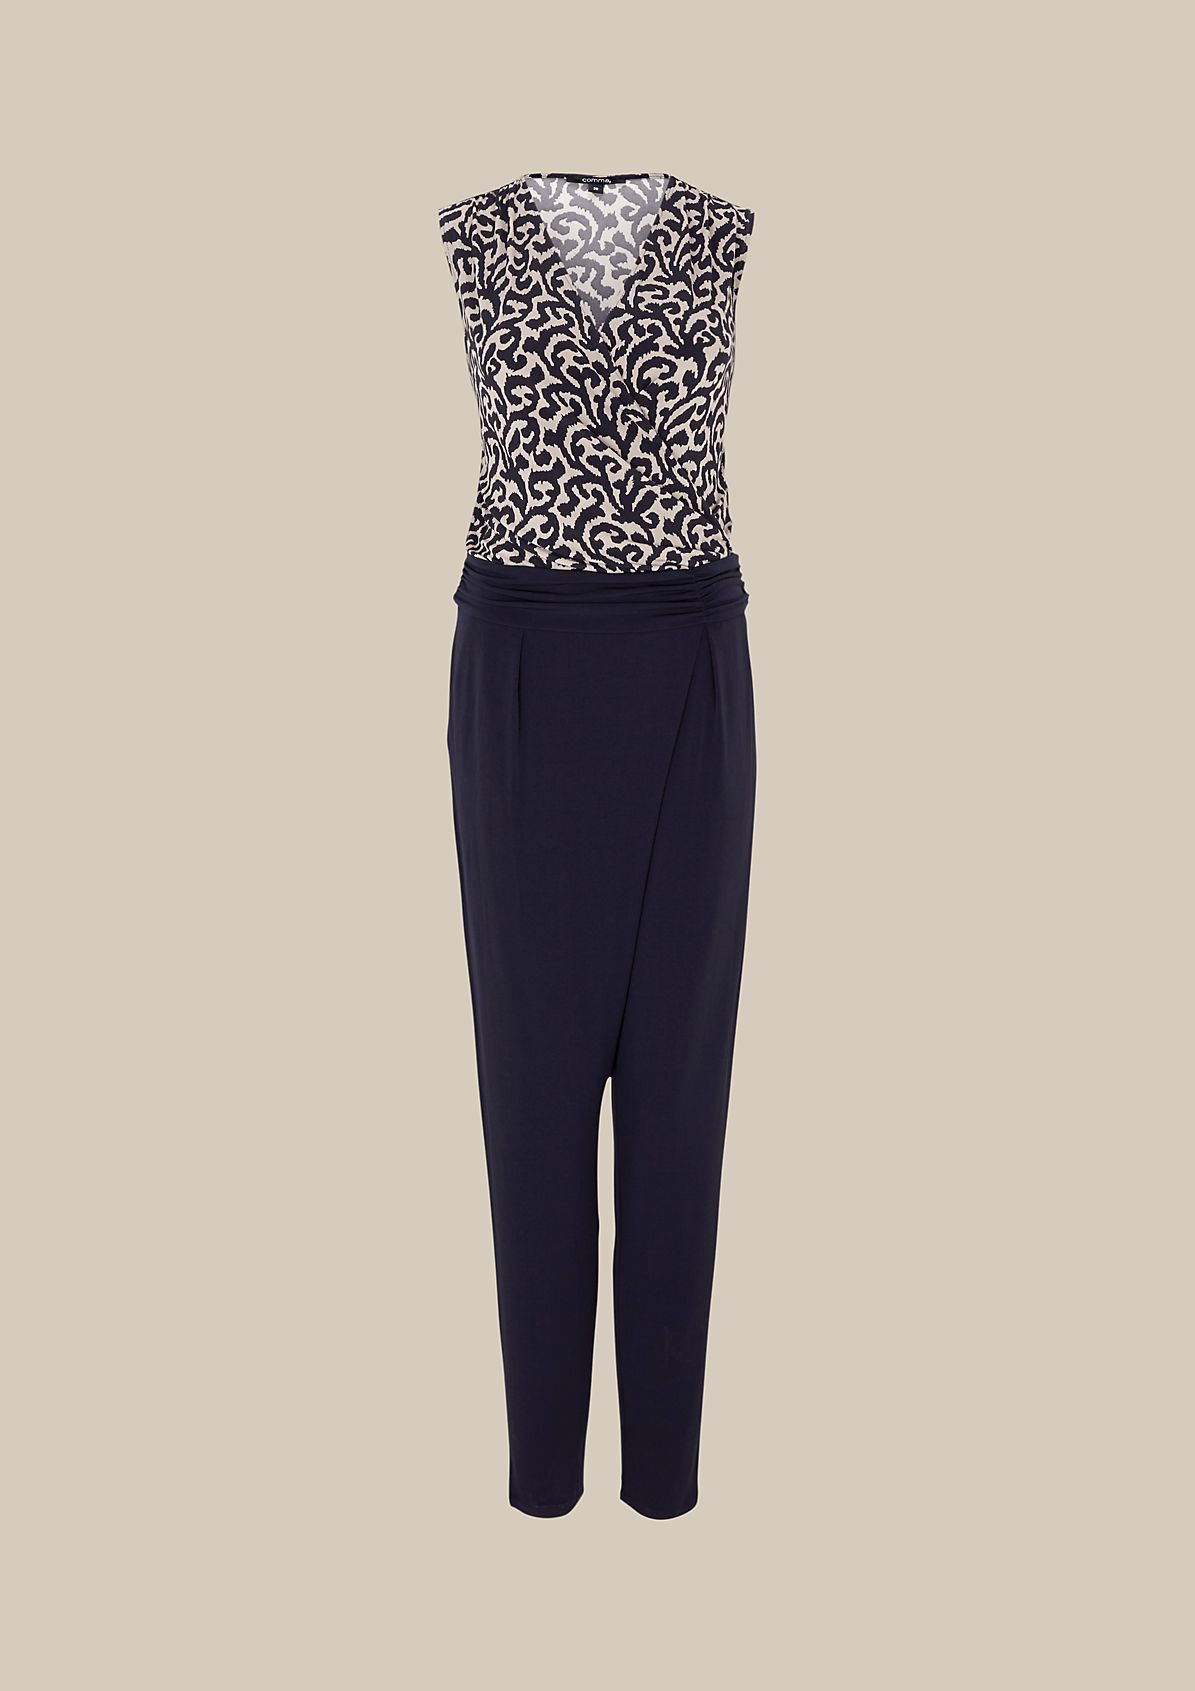 Elegant jersey jumpsuit with a fine printed pattern from s.Oliver